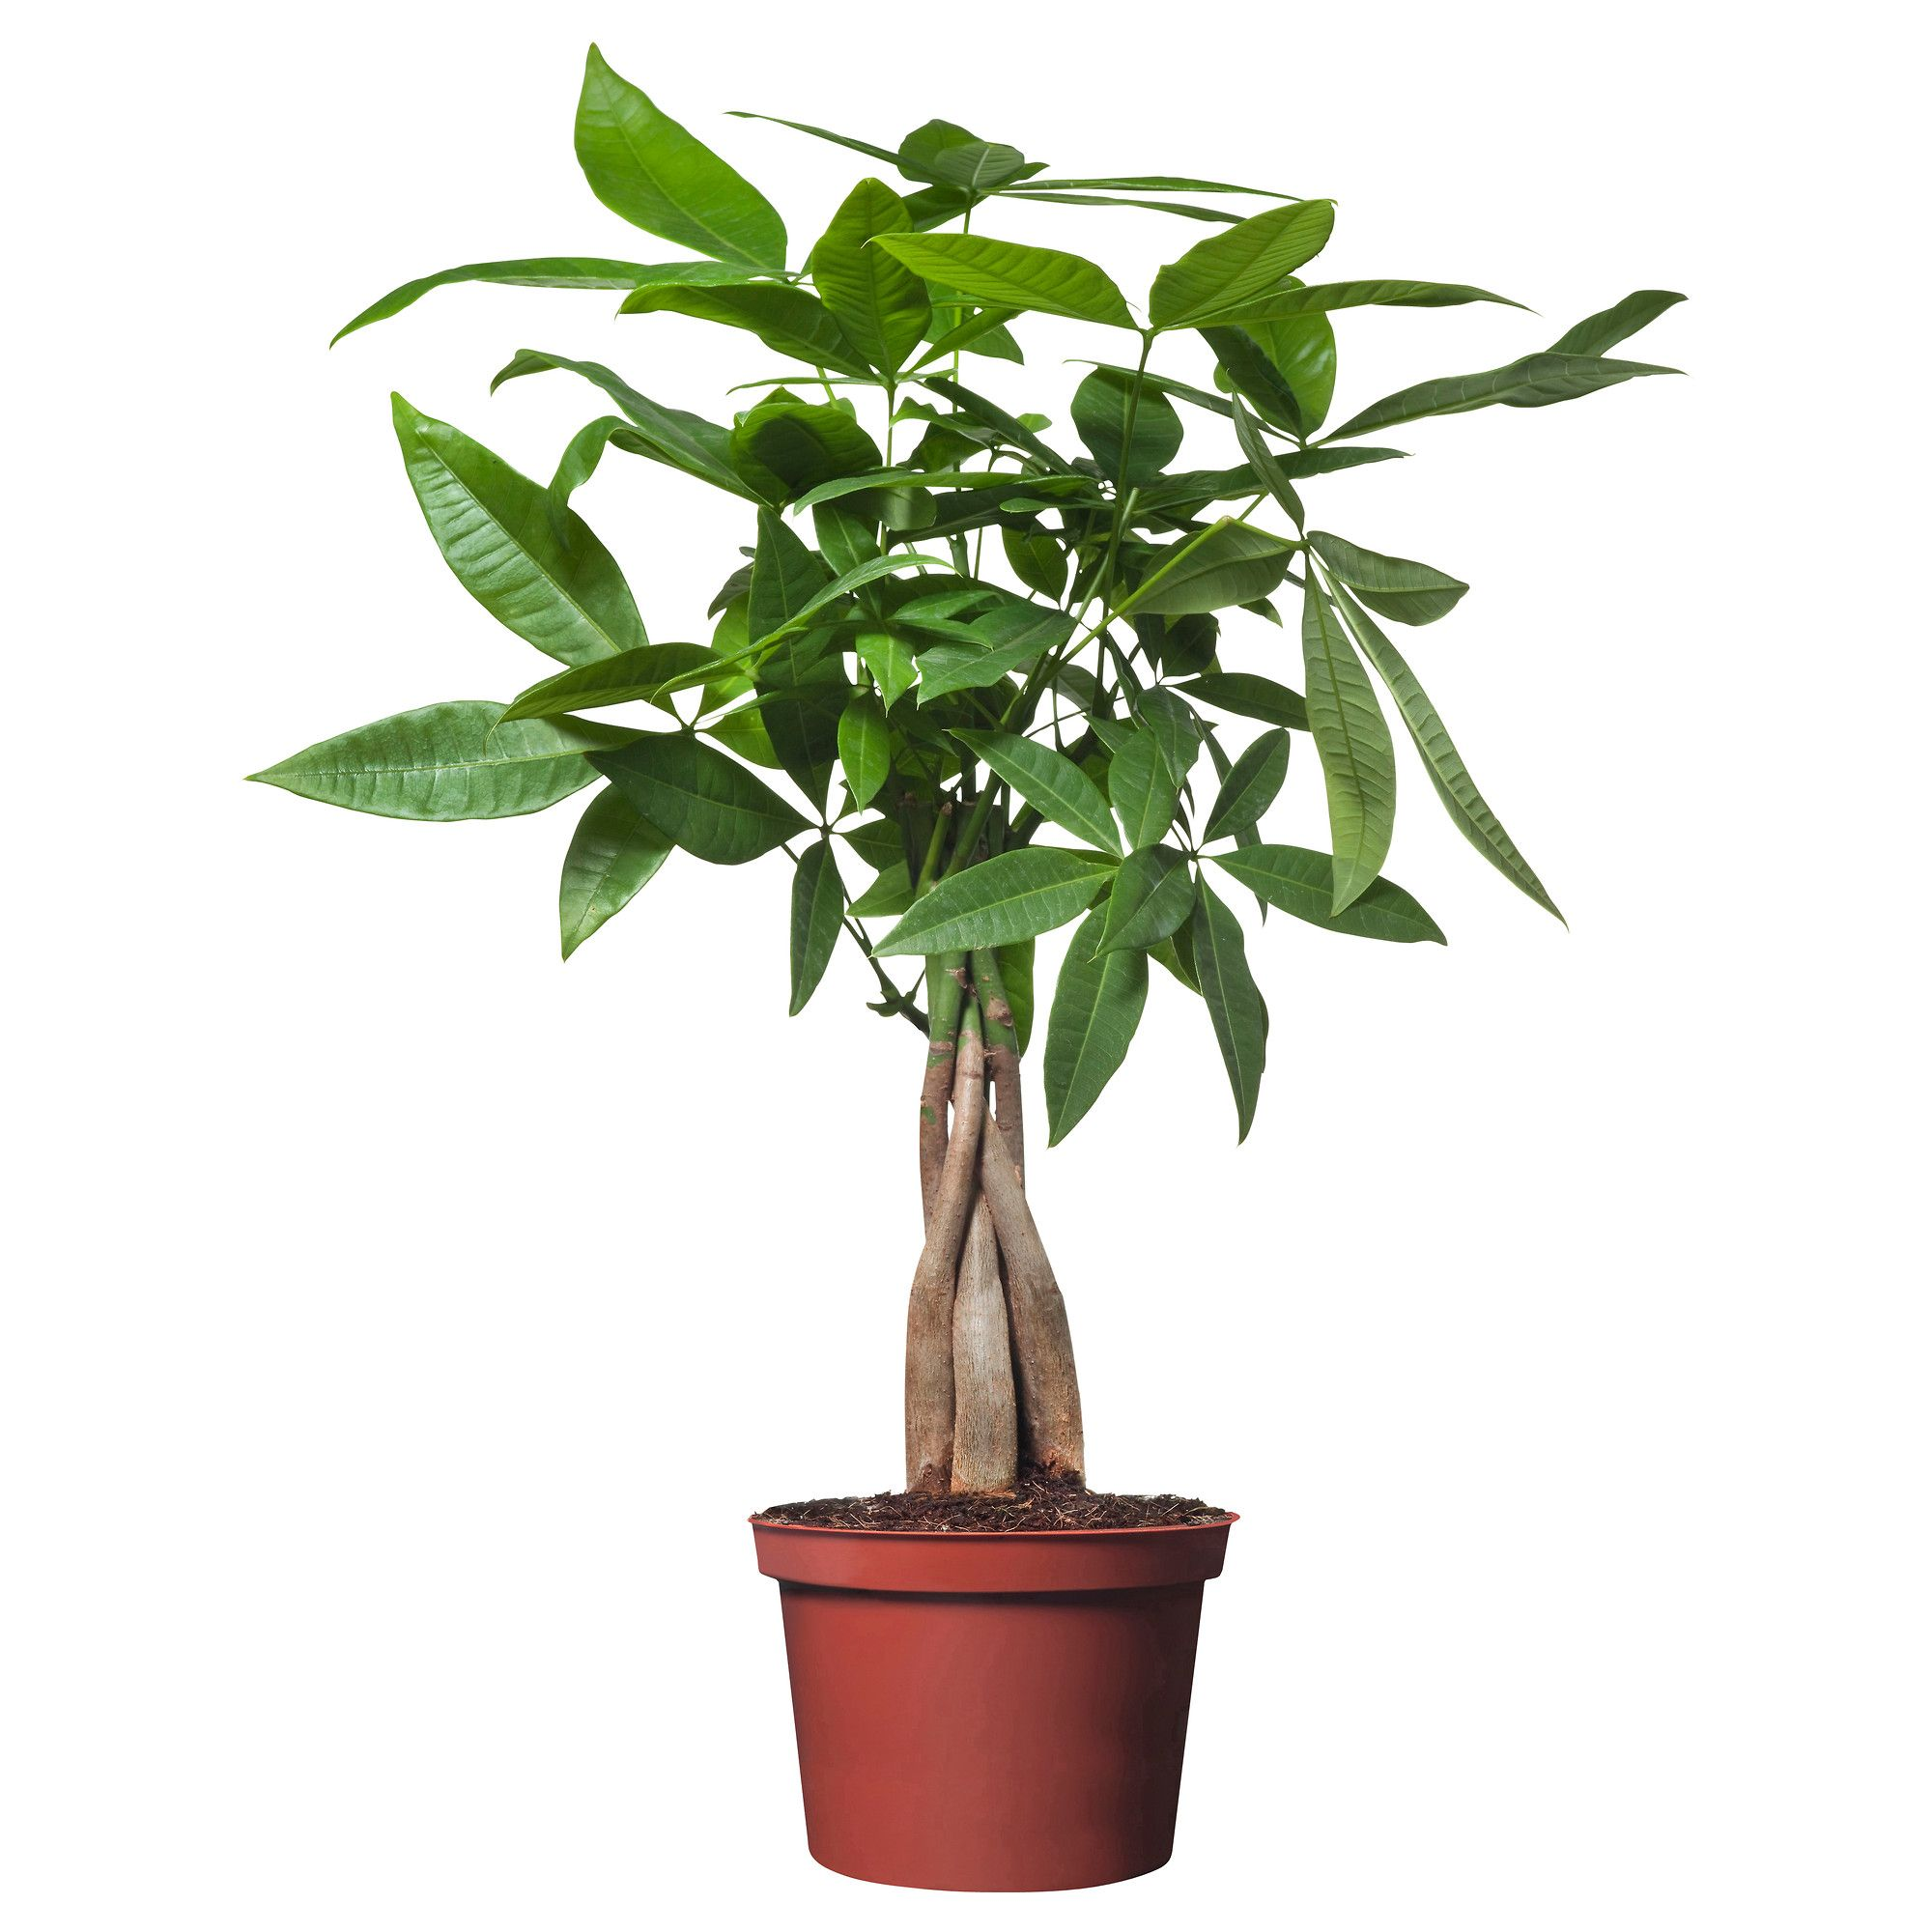 PACHIRA AQUATICA Potted plant IKEA good plant for a brown